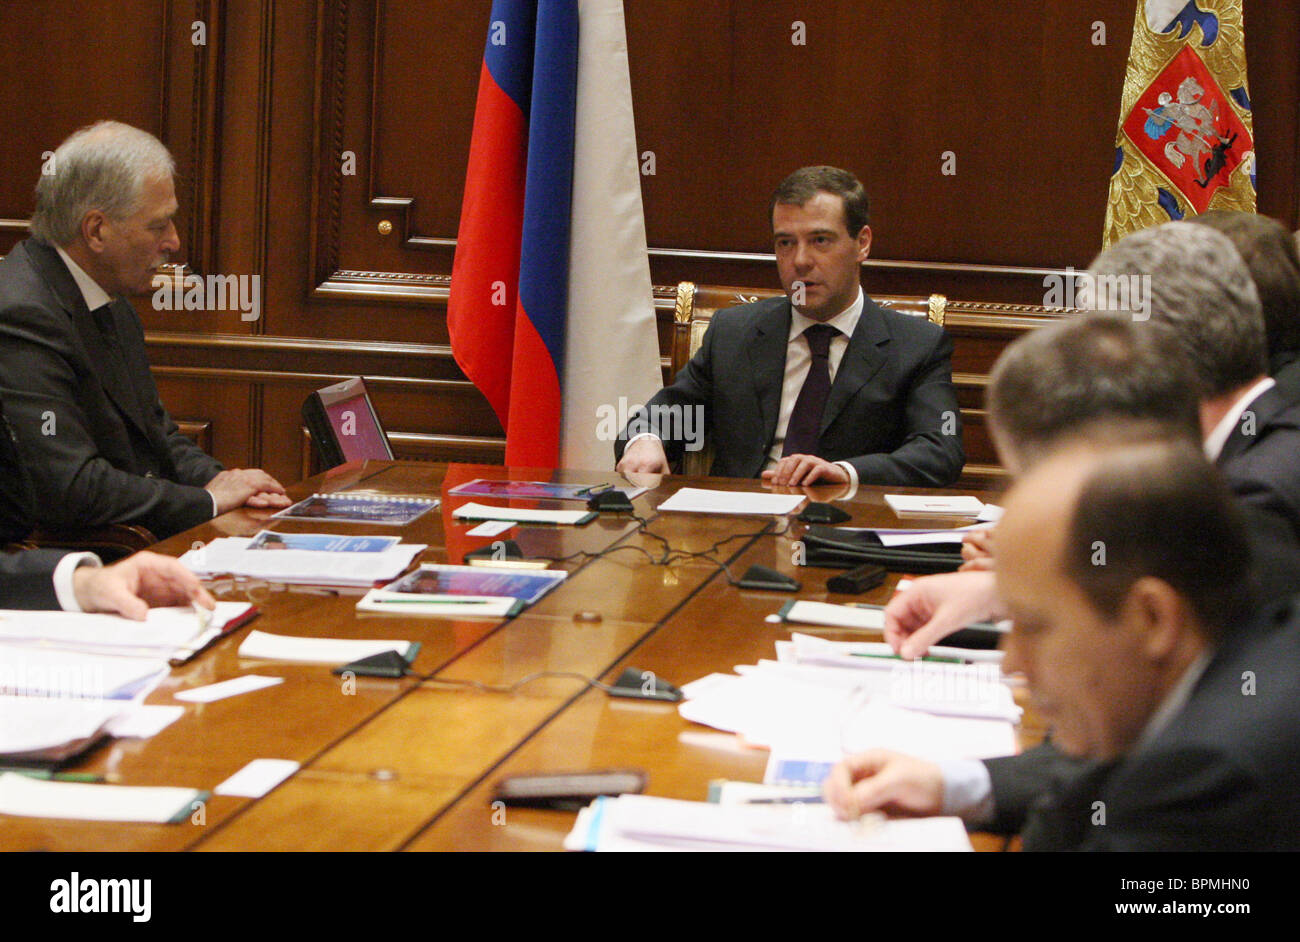 Medvedev chairs Security Council meeting - Stock Image